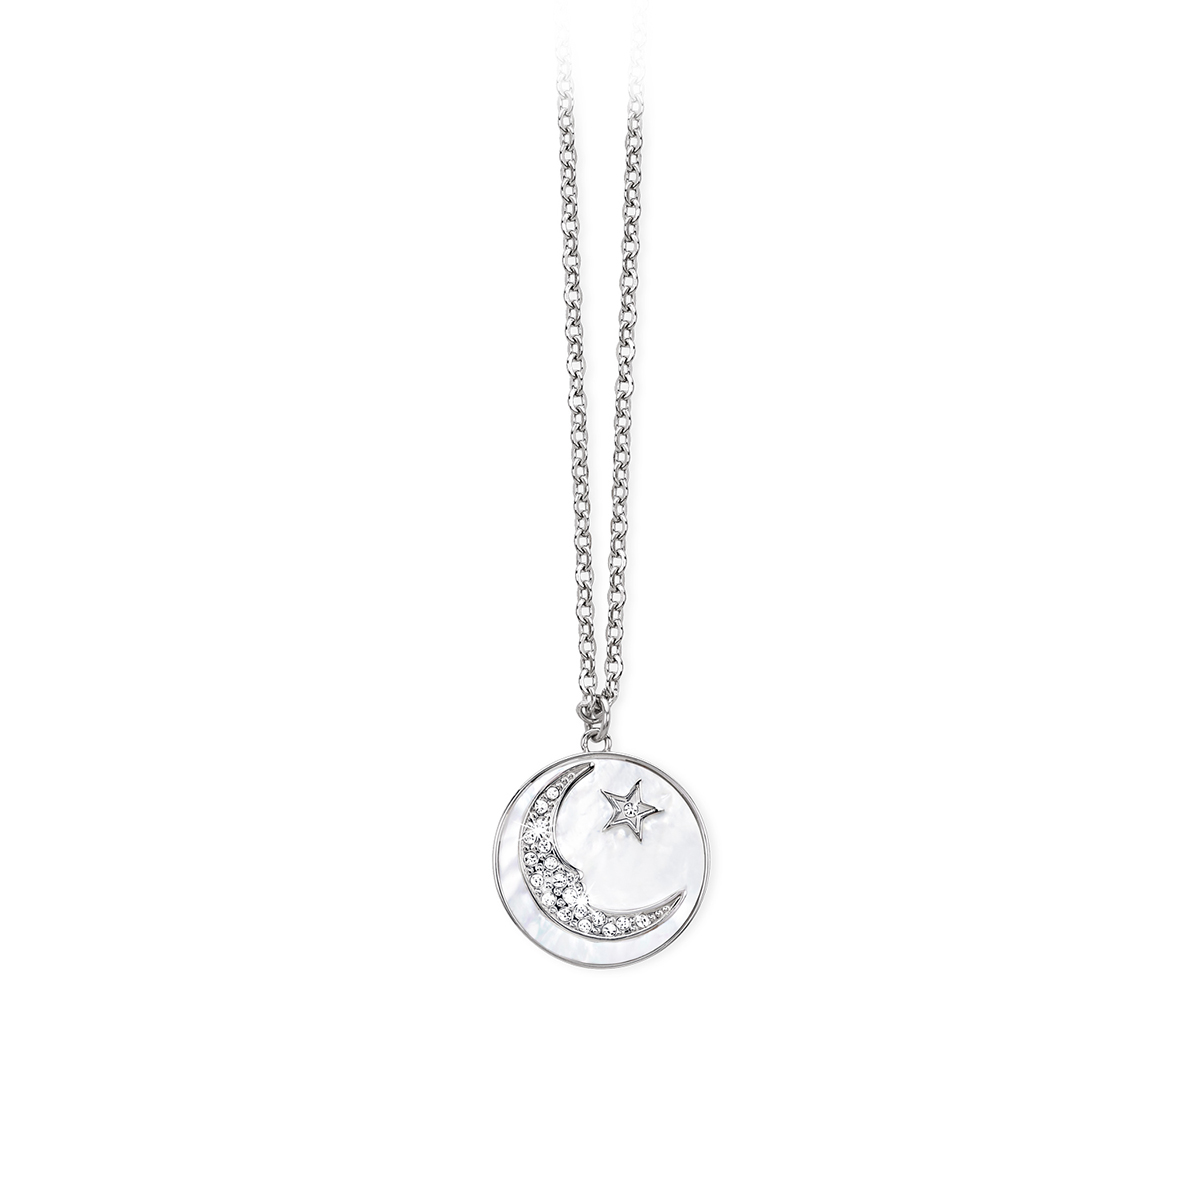 2 jewels outlet 253132 collana angeli argento  79,00 sconto 25